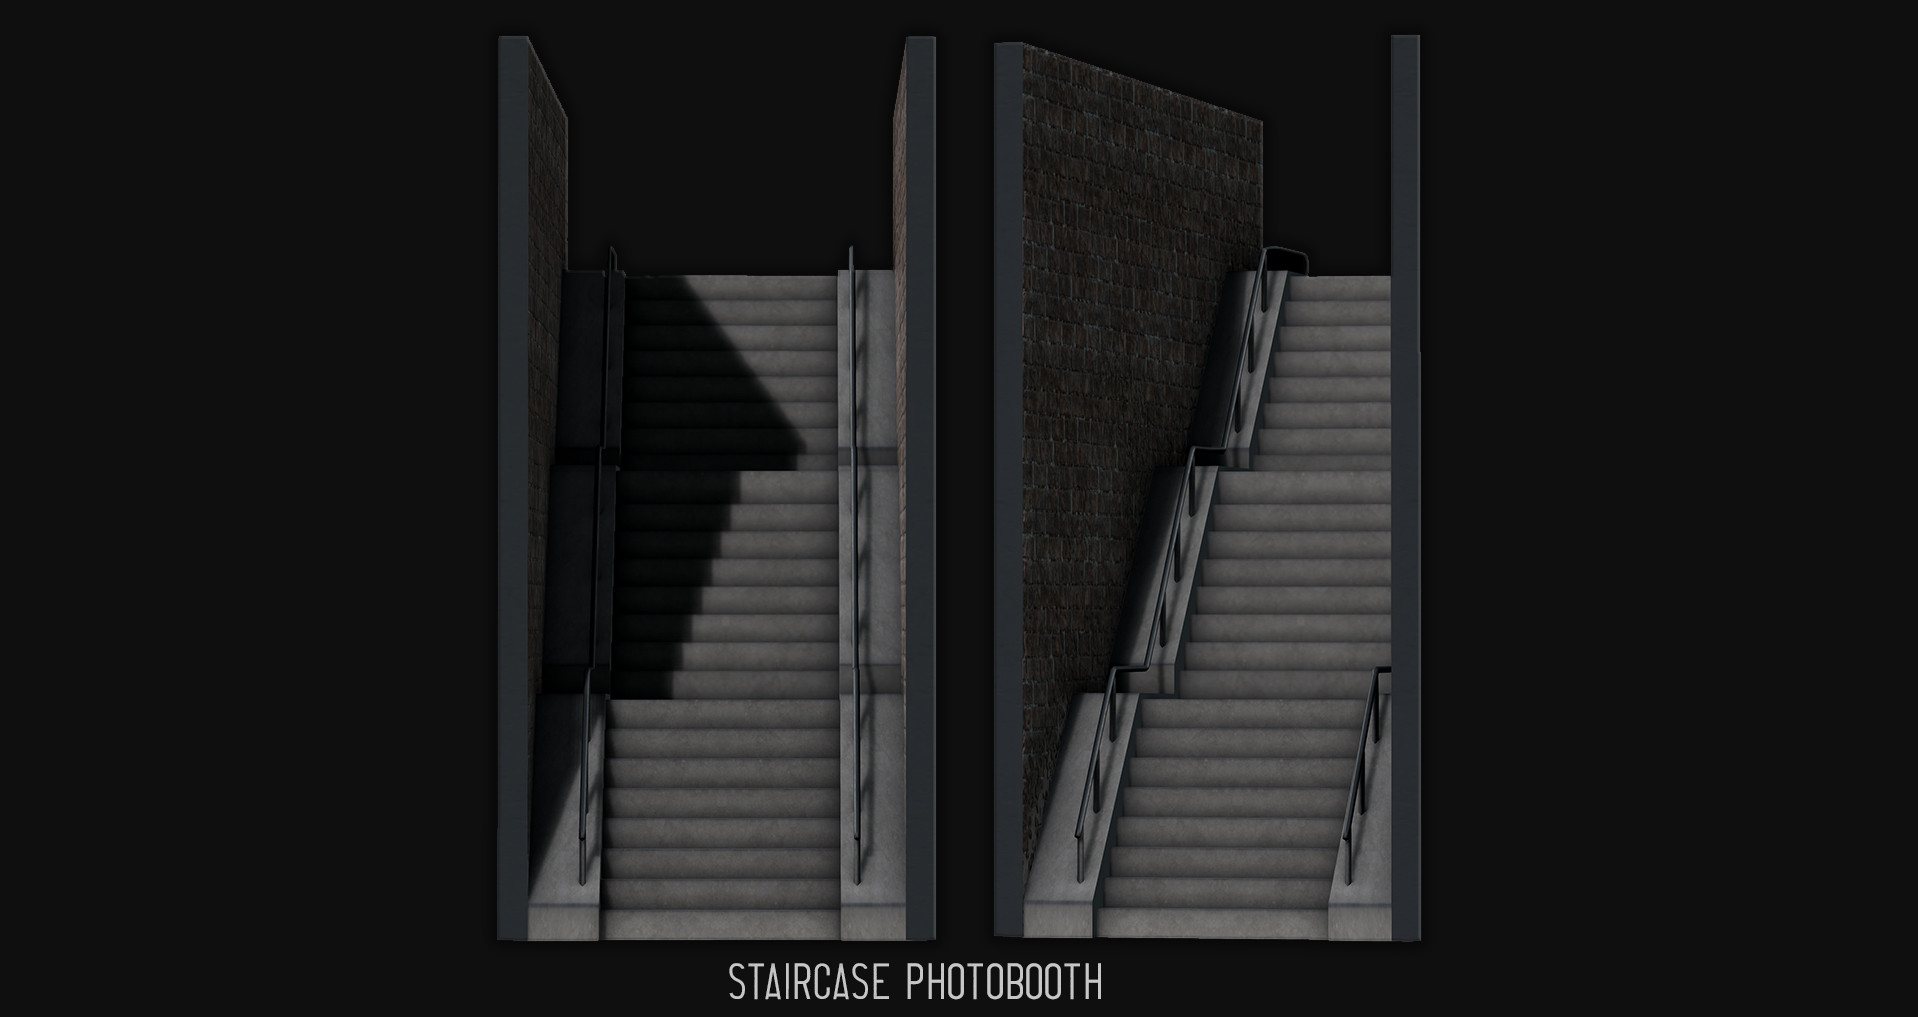 Staircase Photobooth